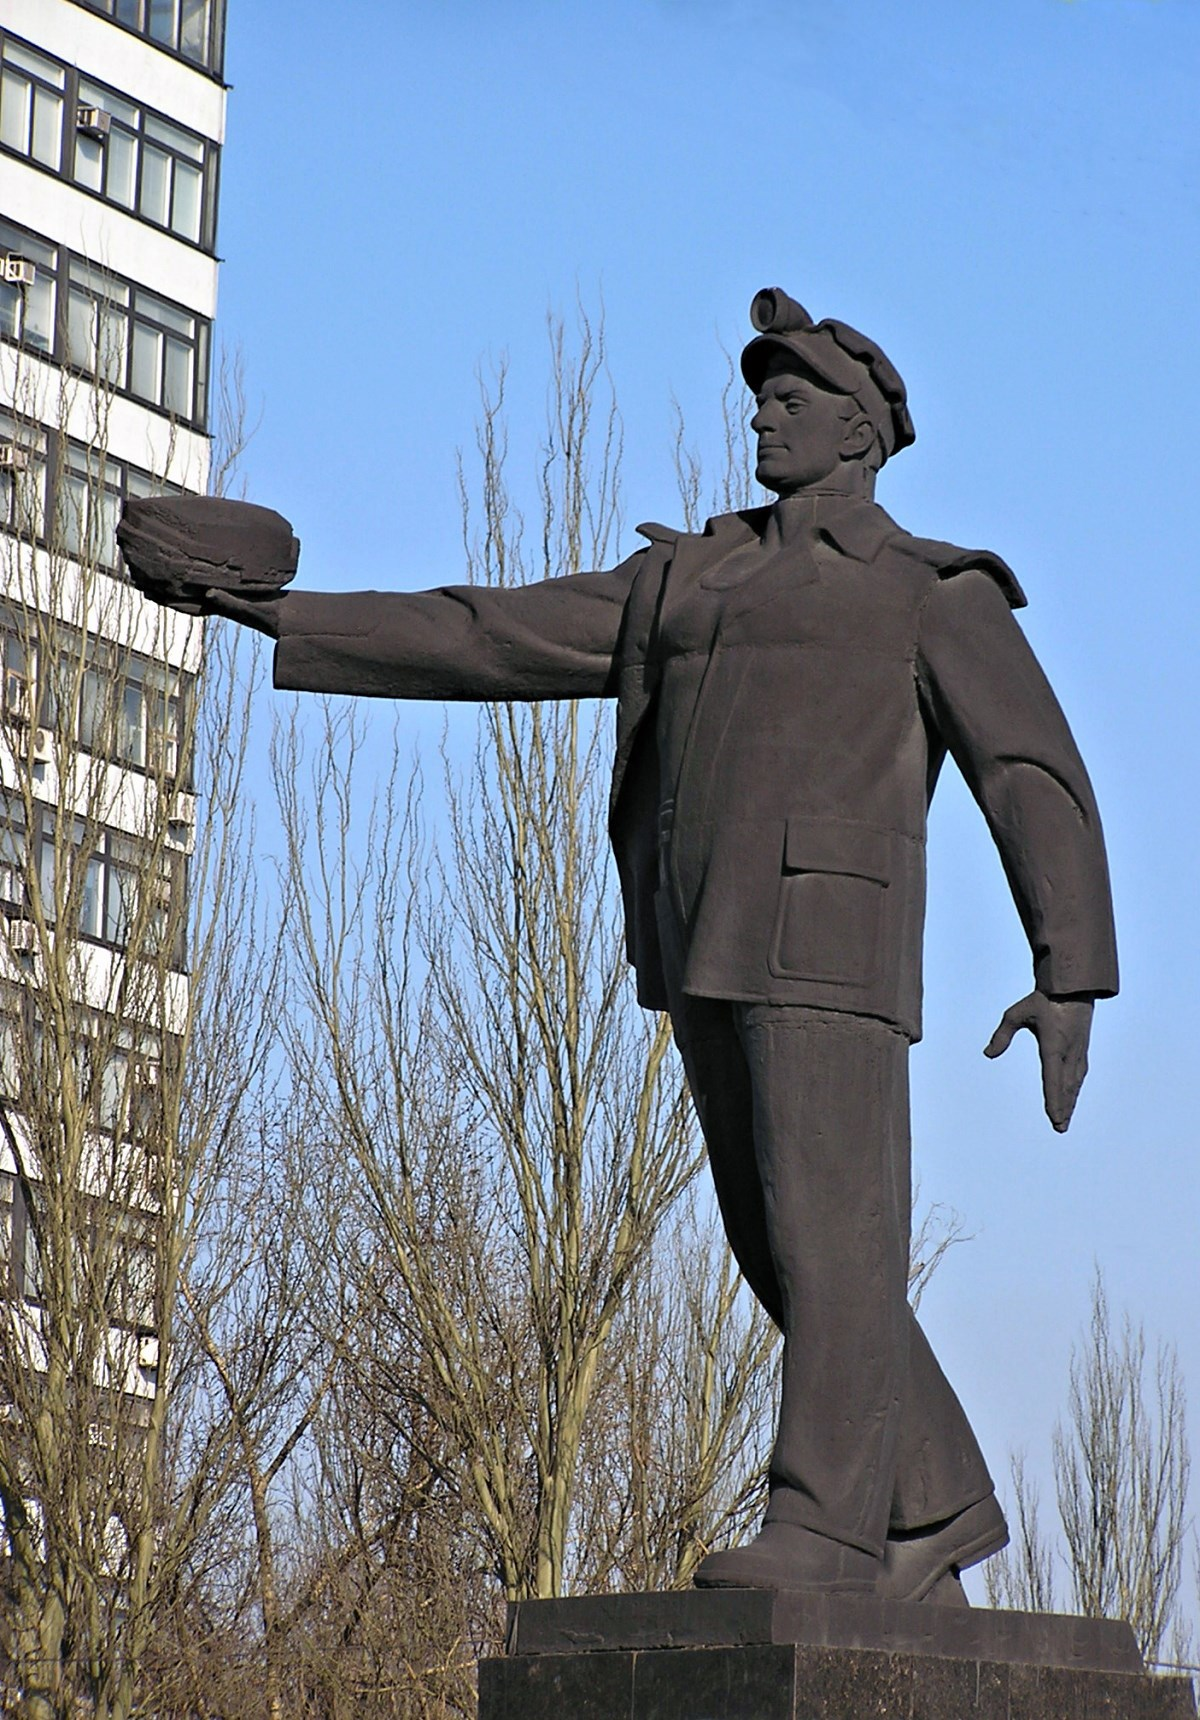 Monument to Yeltsin, desecrated in Yekaterinburg, banned from laundering 24.08.2012 23